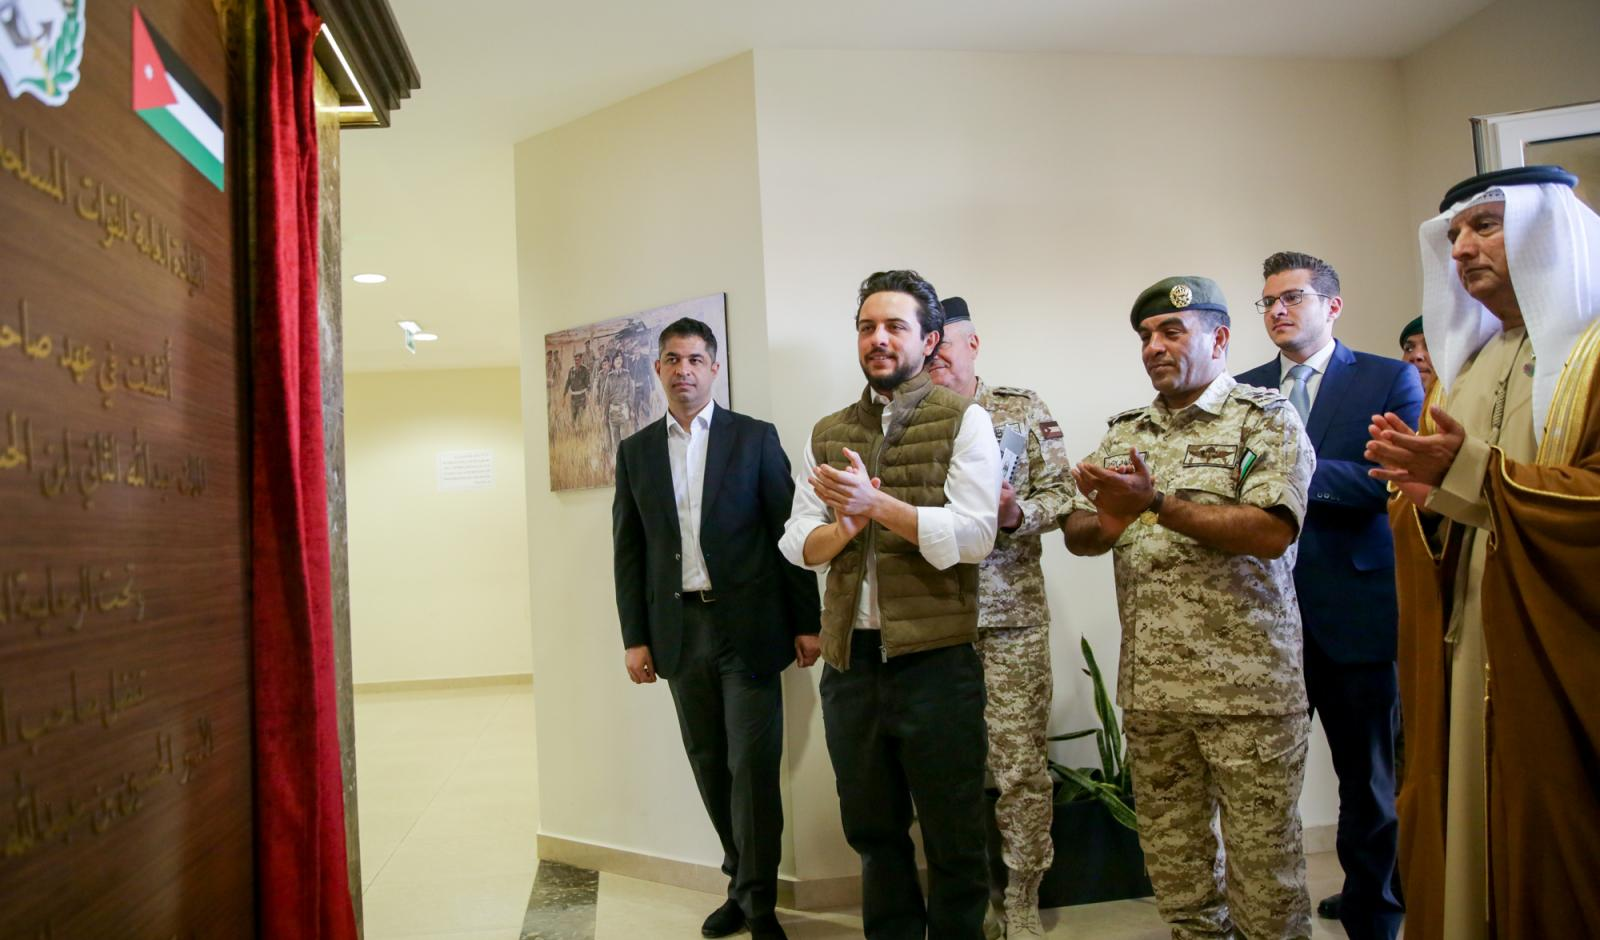 Deputising for King, Crown Prince inaugurates JAF's Sheikh Mohamed bin Zayed Al Nahyan Training City in Zarqa